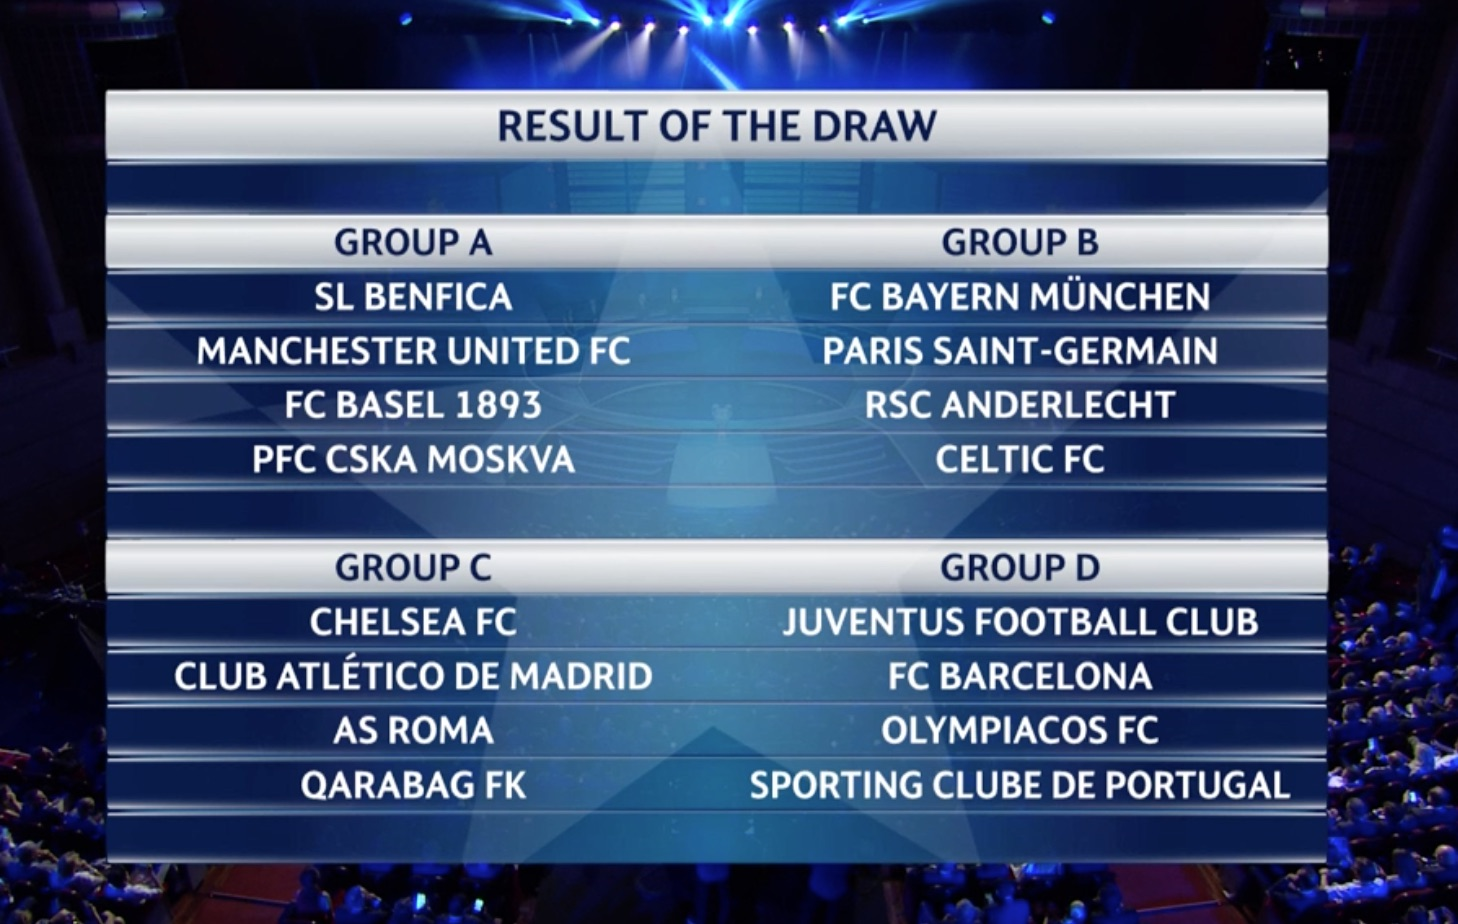 Champions League draw 2017-18 A